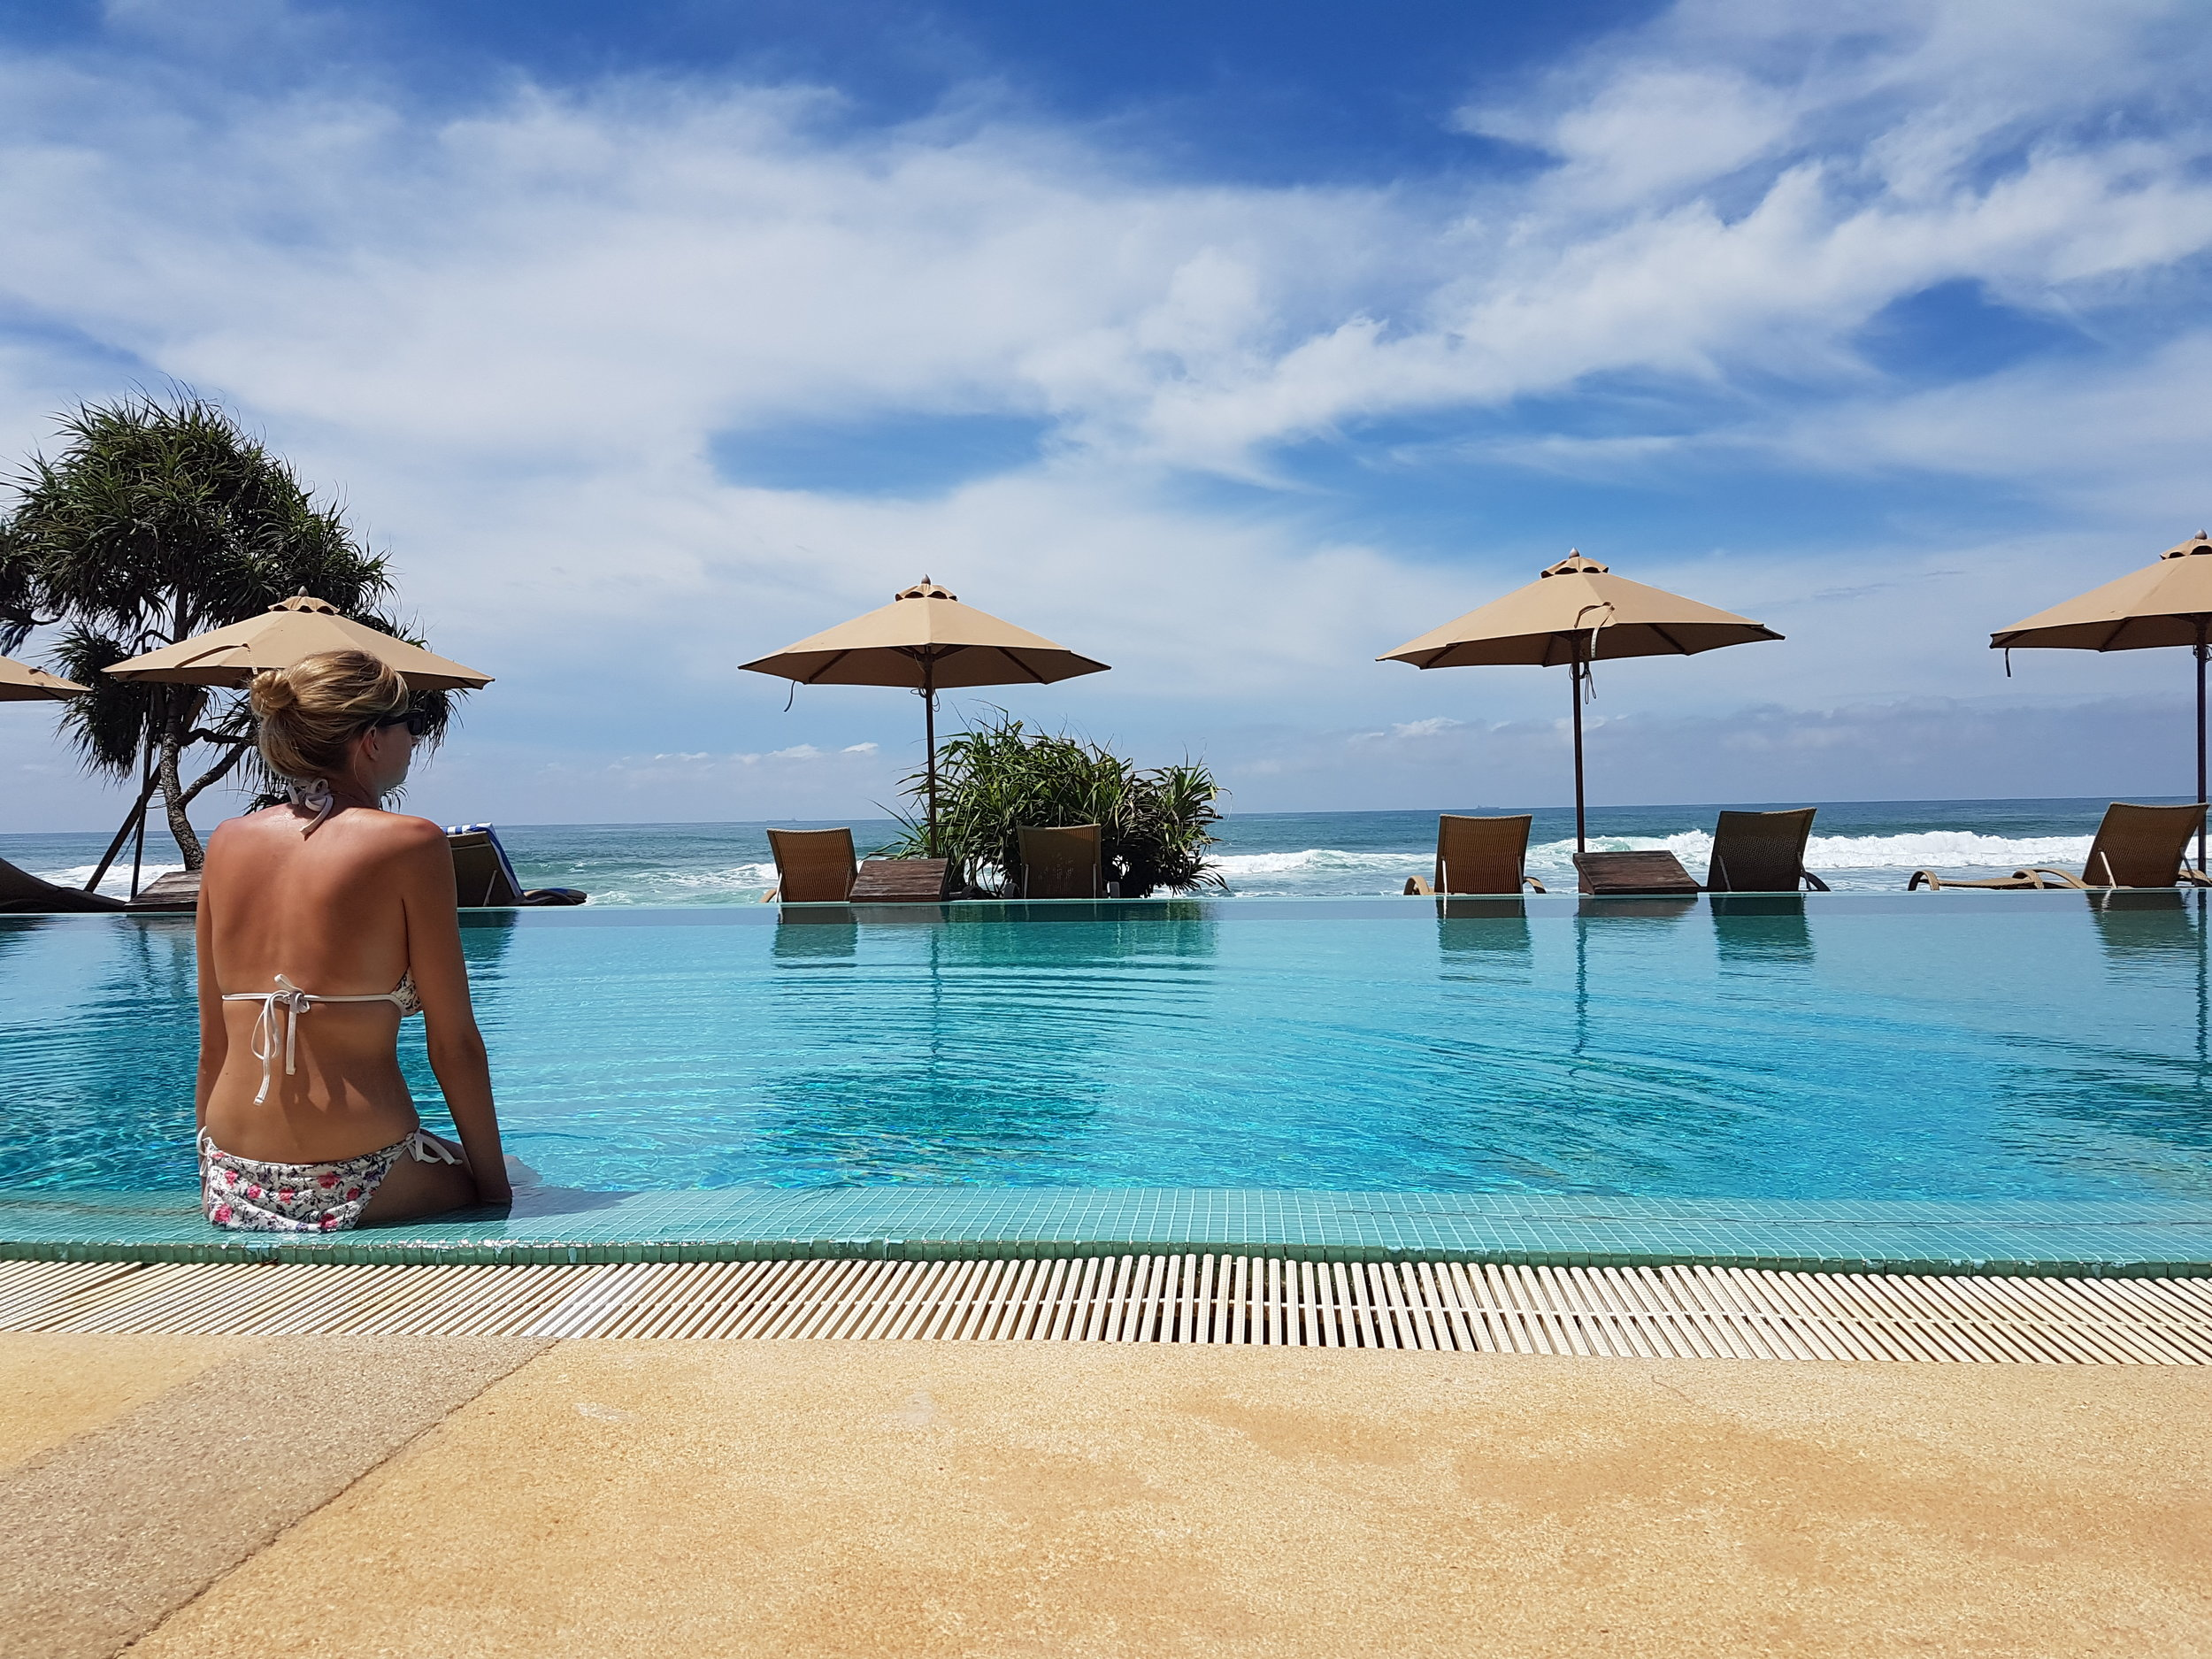 invite-to-paradise-sri-lanka-holiday-honeymoon-specialists-customer-feedback-fleur-simon-minshull-the-fortress-galle-pool-relax.jpg